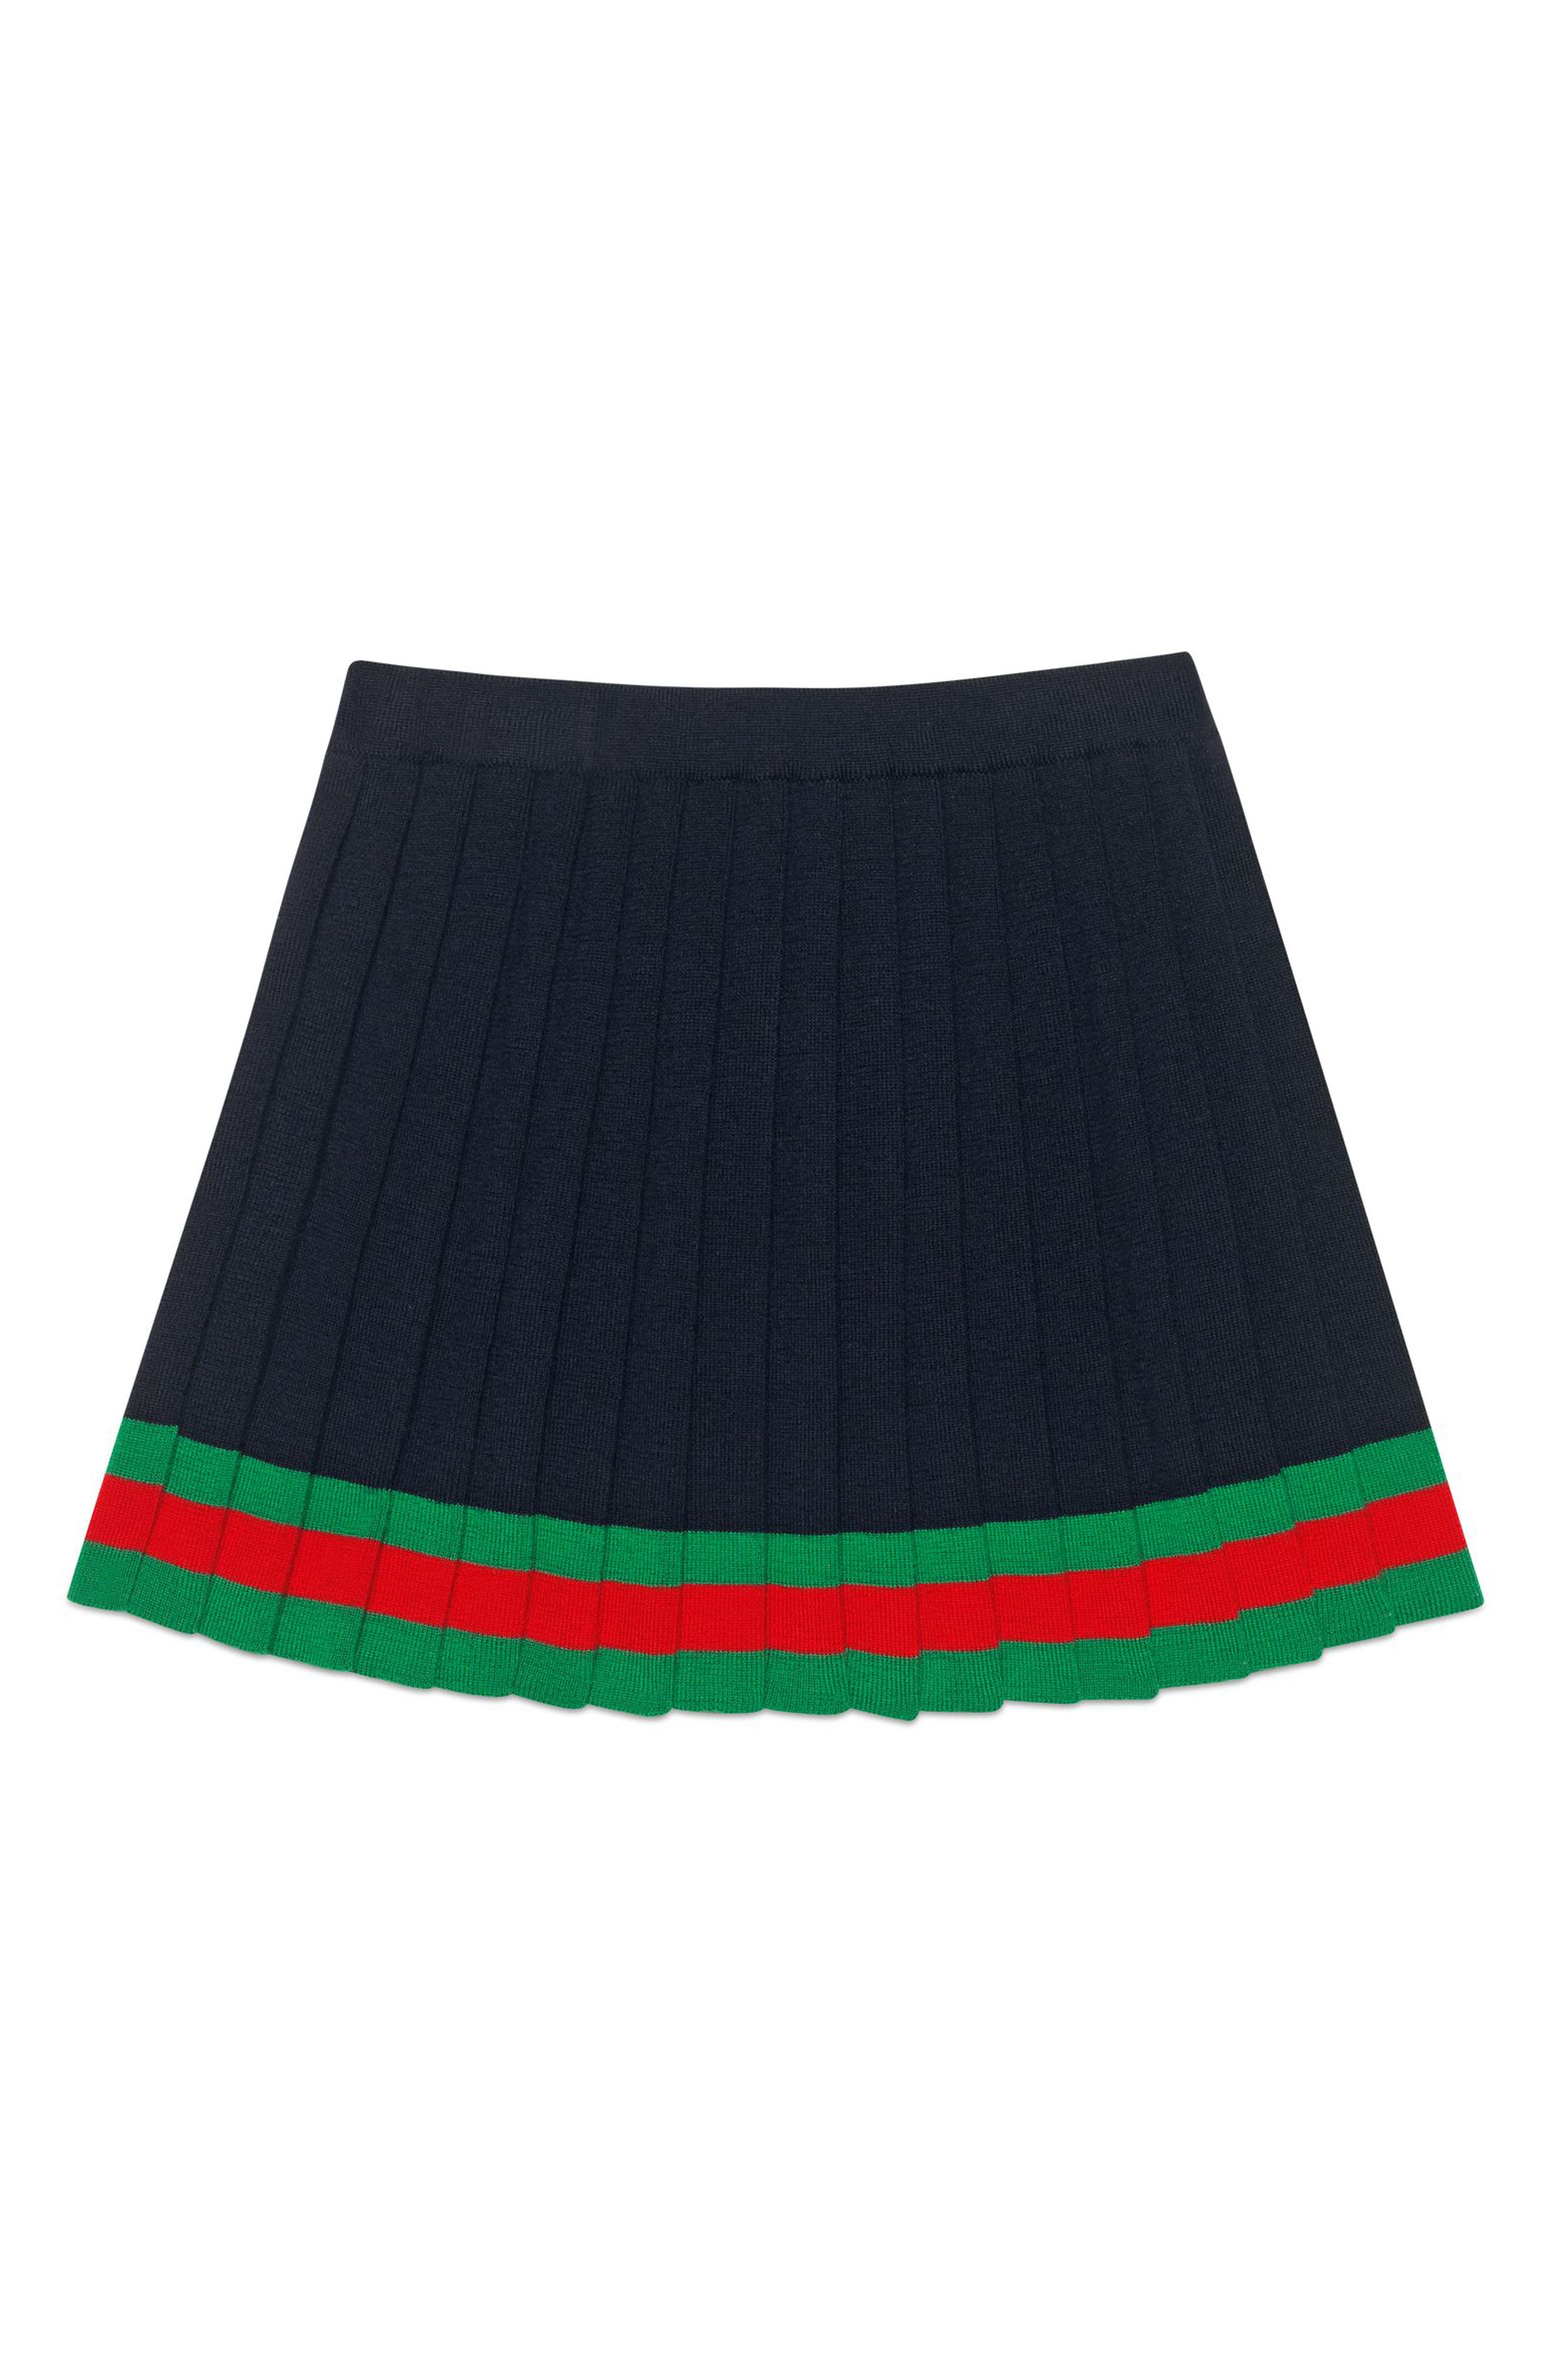 Girls Gucci Pleated Wool Knit Skirt Size 12Y  Blue